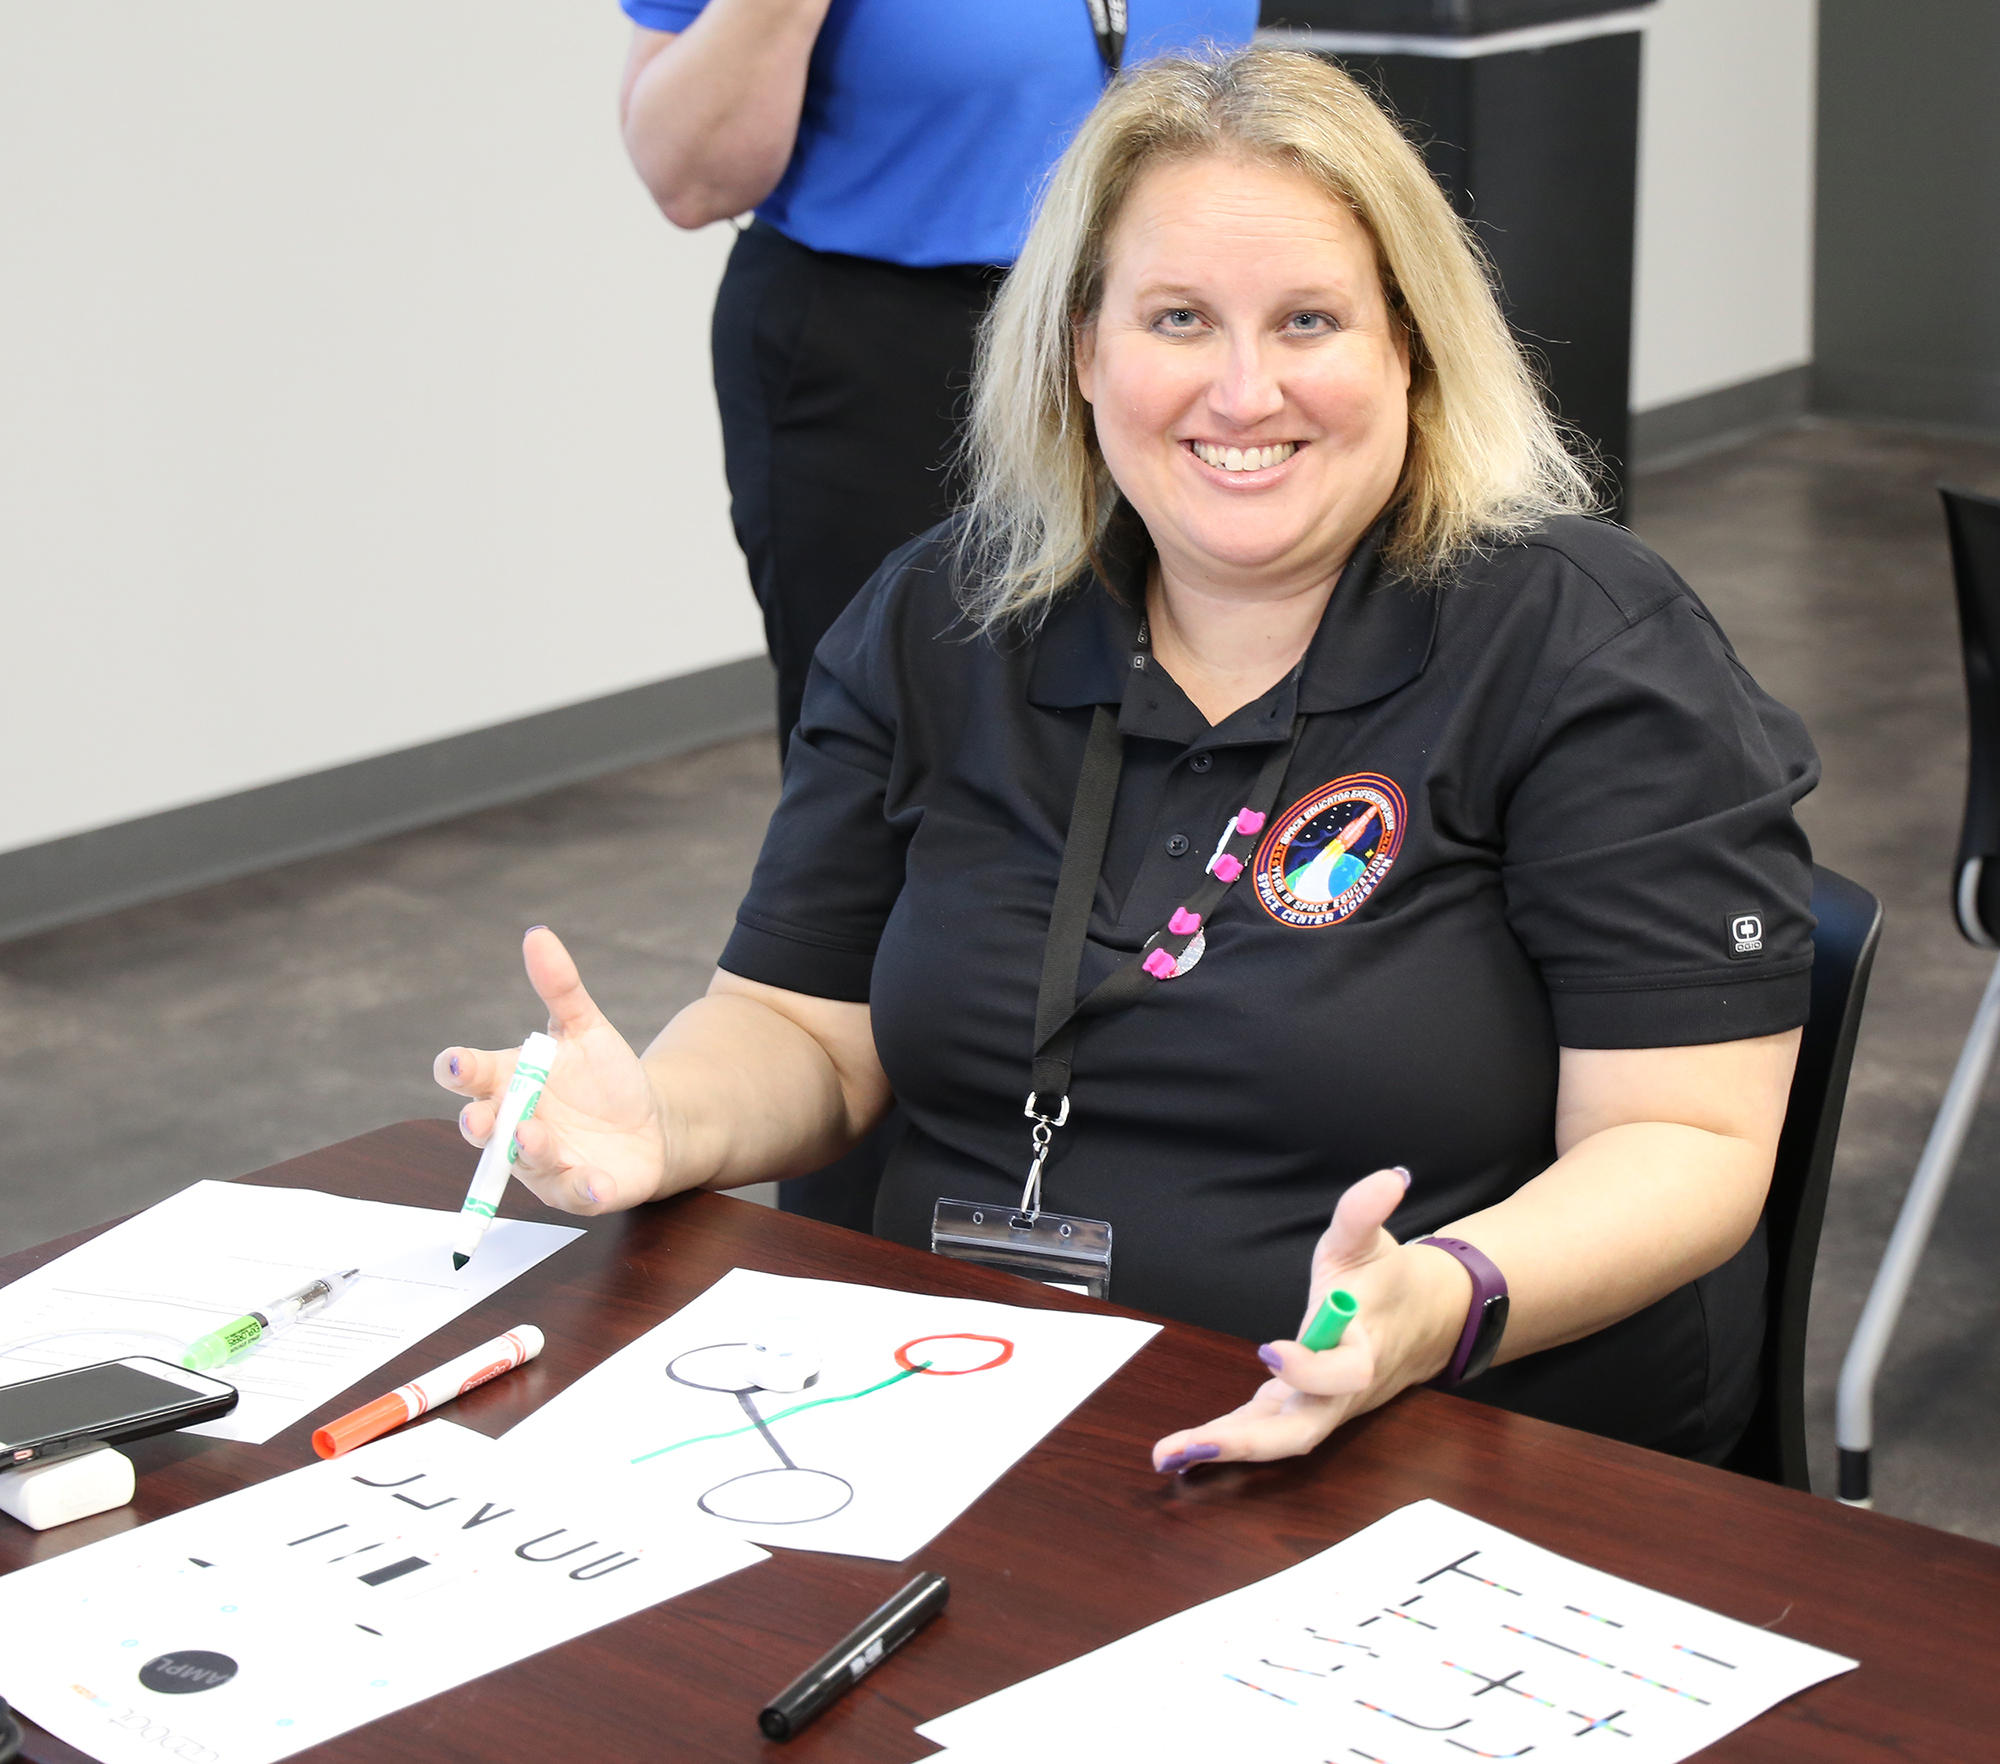 Jennifer Cheesman received the Cherri Brinley Outstanding Educator Award at the 24th Space Exploration Educators Conference.